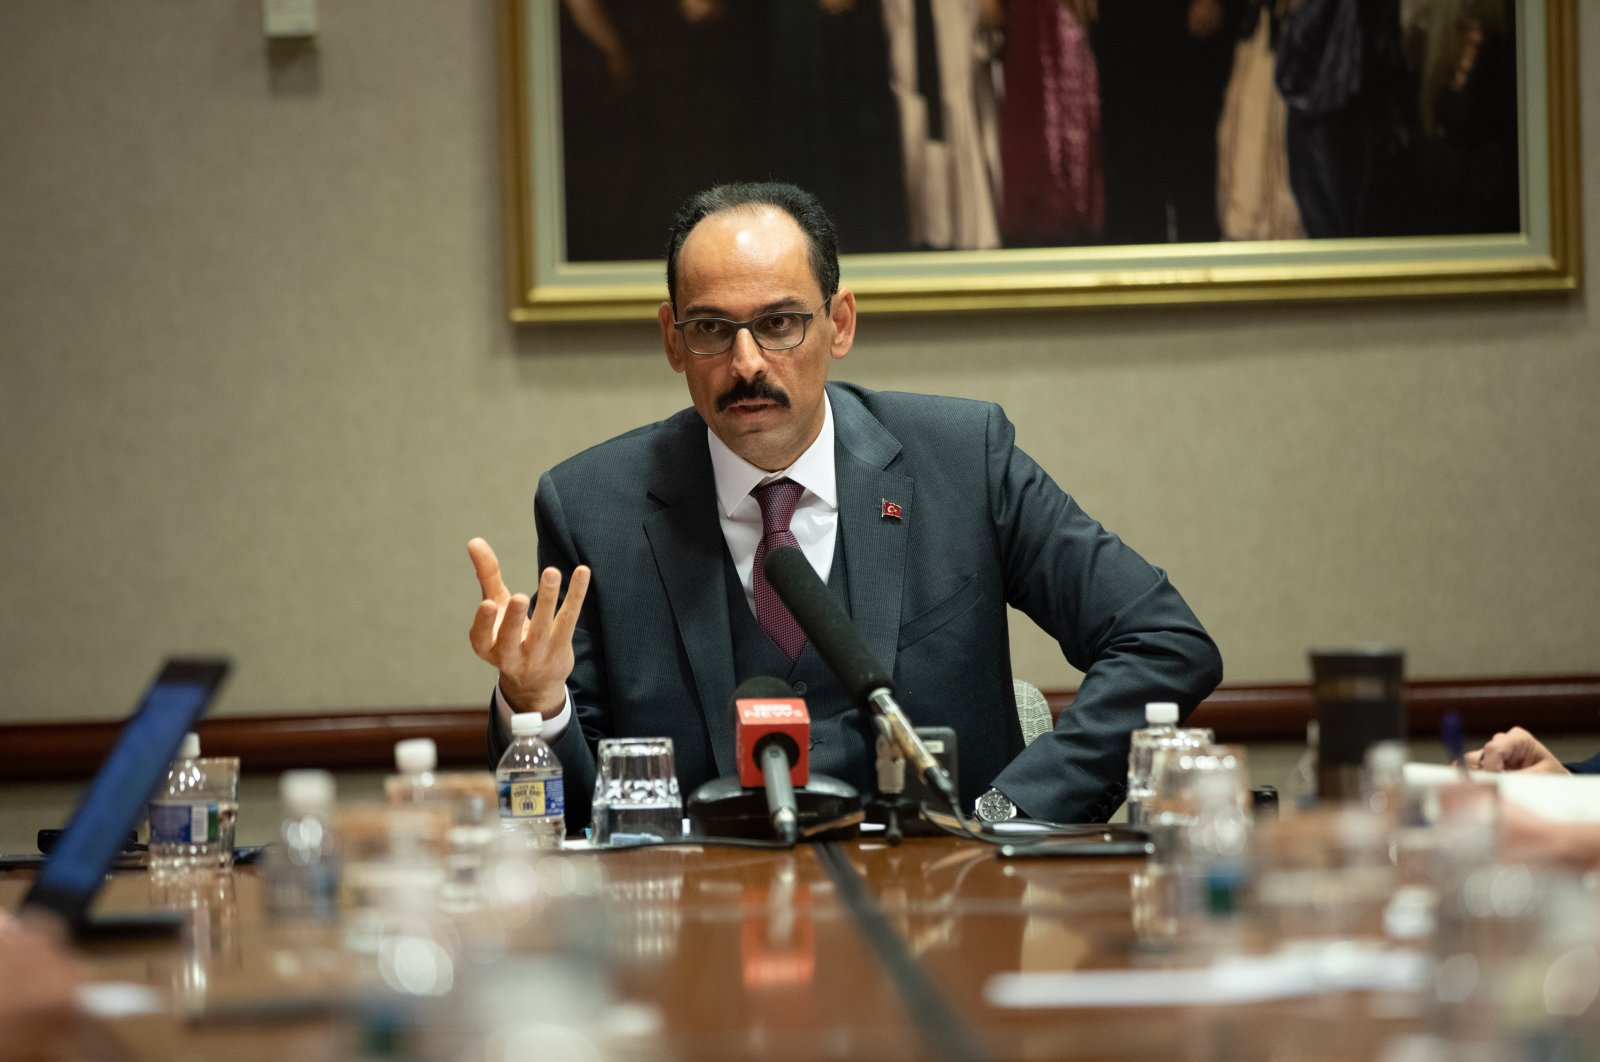 Presidential Spokesperson İbrahim Kalın speaks to journalists after the 37th joint annual conference of the American-Turkish Council (ATC) in Washington, D.C., U.S., April 18, 2019. (AA Photo)